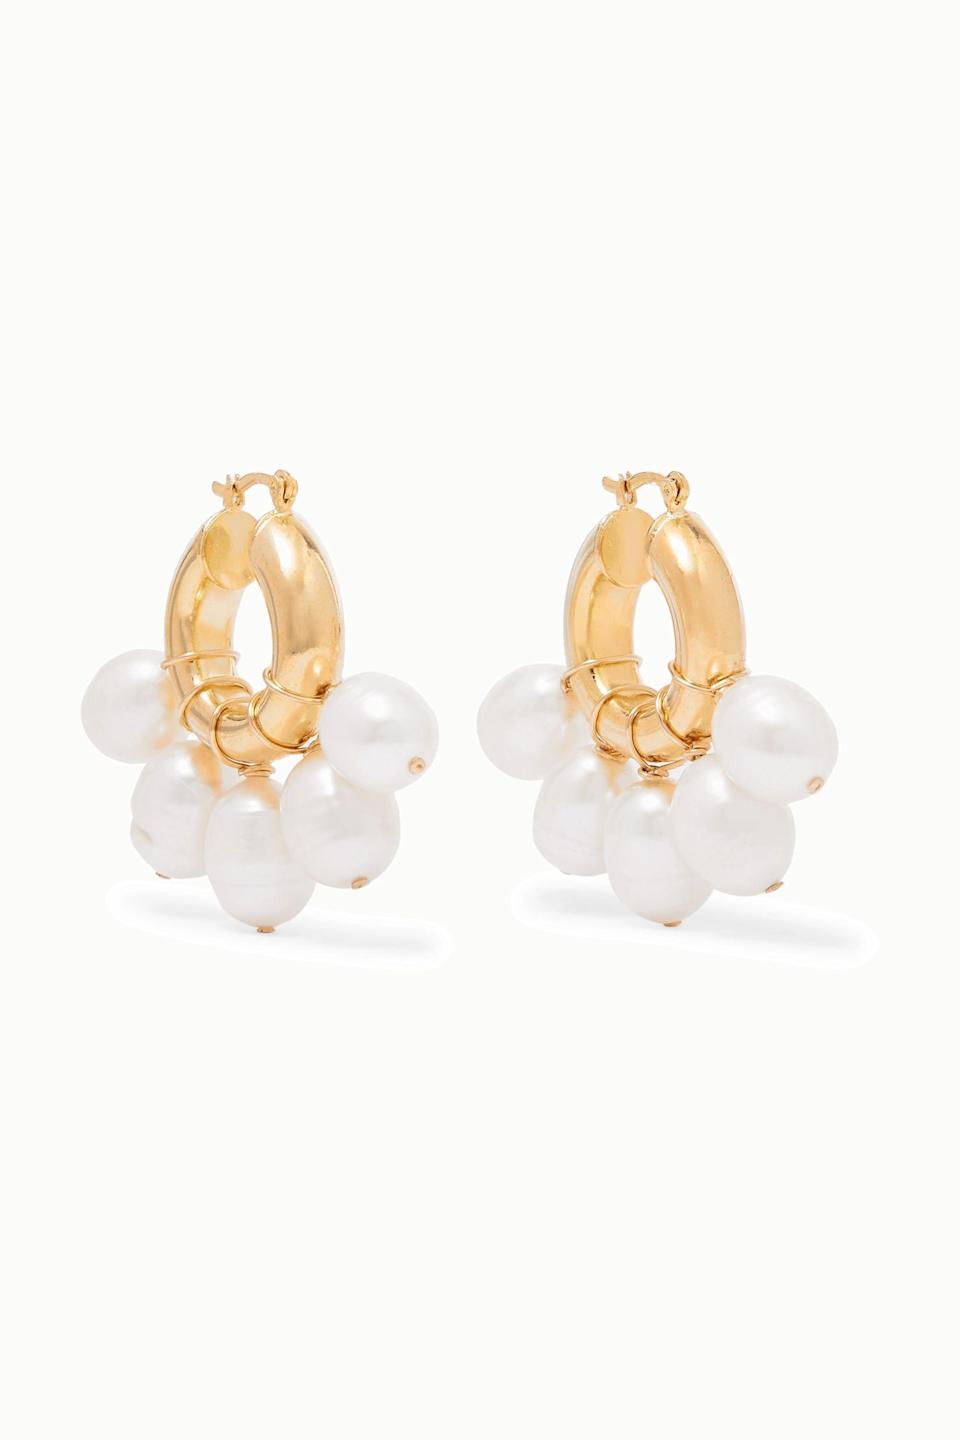 """<p><strong>éliou</strong></p><p>net-a-porter.com</p><p><strong>$96.00</strong></p><p><a href=""""https://go.redirectingat.com?id=74968X1596630&url=https%3A%2F%2Fwww.net-a-porter.com%2Fen-us%2Fshop%2Fproduct%2Feliou%2Fkavala-gold-plated-pearl-earrings%2F1147745&sref=https%3A%2F%2Fwww.townandcountrymag.com%2Fstyle%2Fjewelry-and-watches%2Fg34741522%2Fbest-jewelry-gift-ideas%2F"""" rel=""""nofollow noopener"""" target=""""_blank"""" data-ylk=""""slk:Shop Now"""" class=""""link rapid-noclick-resp"""">Shop Now</a></p><p>These pearl earrings are the best of everything, hoops <em>and </em>pearls in one, beautiful package. </p>"""